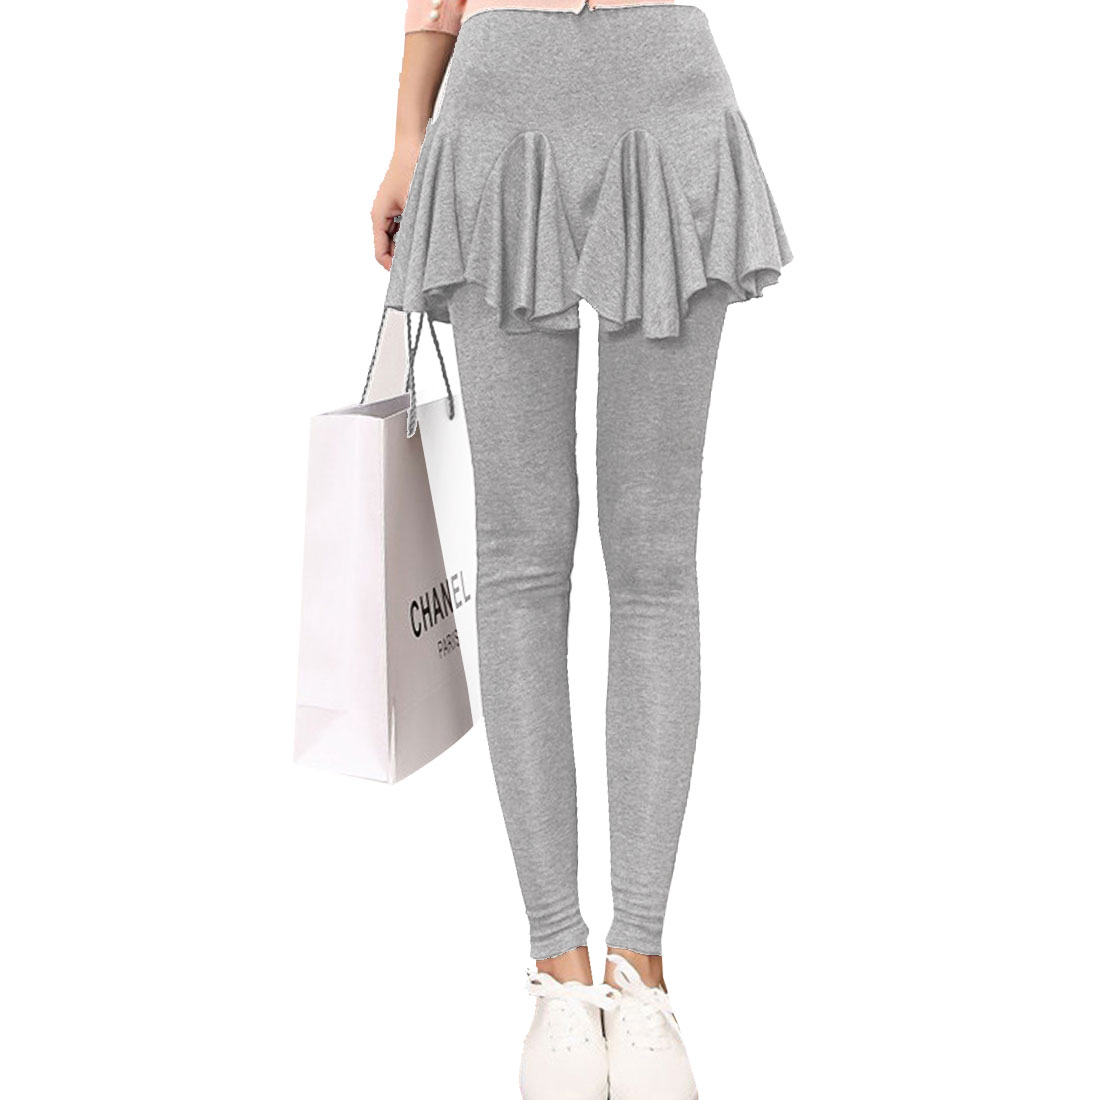 Women Elastic Waist Layered Design Flounce Hem Skirt Leggings Gray XS